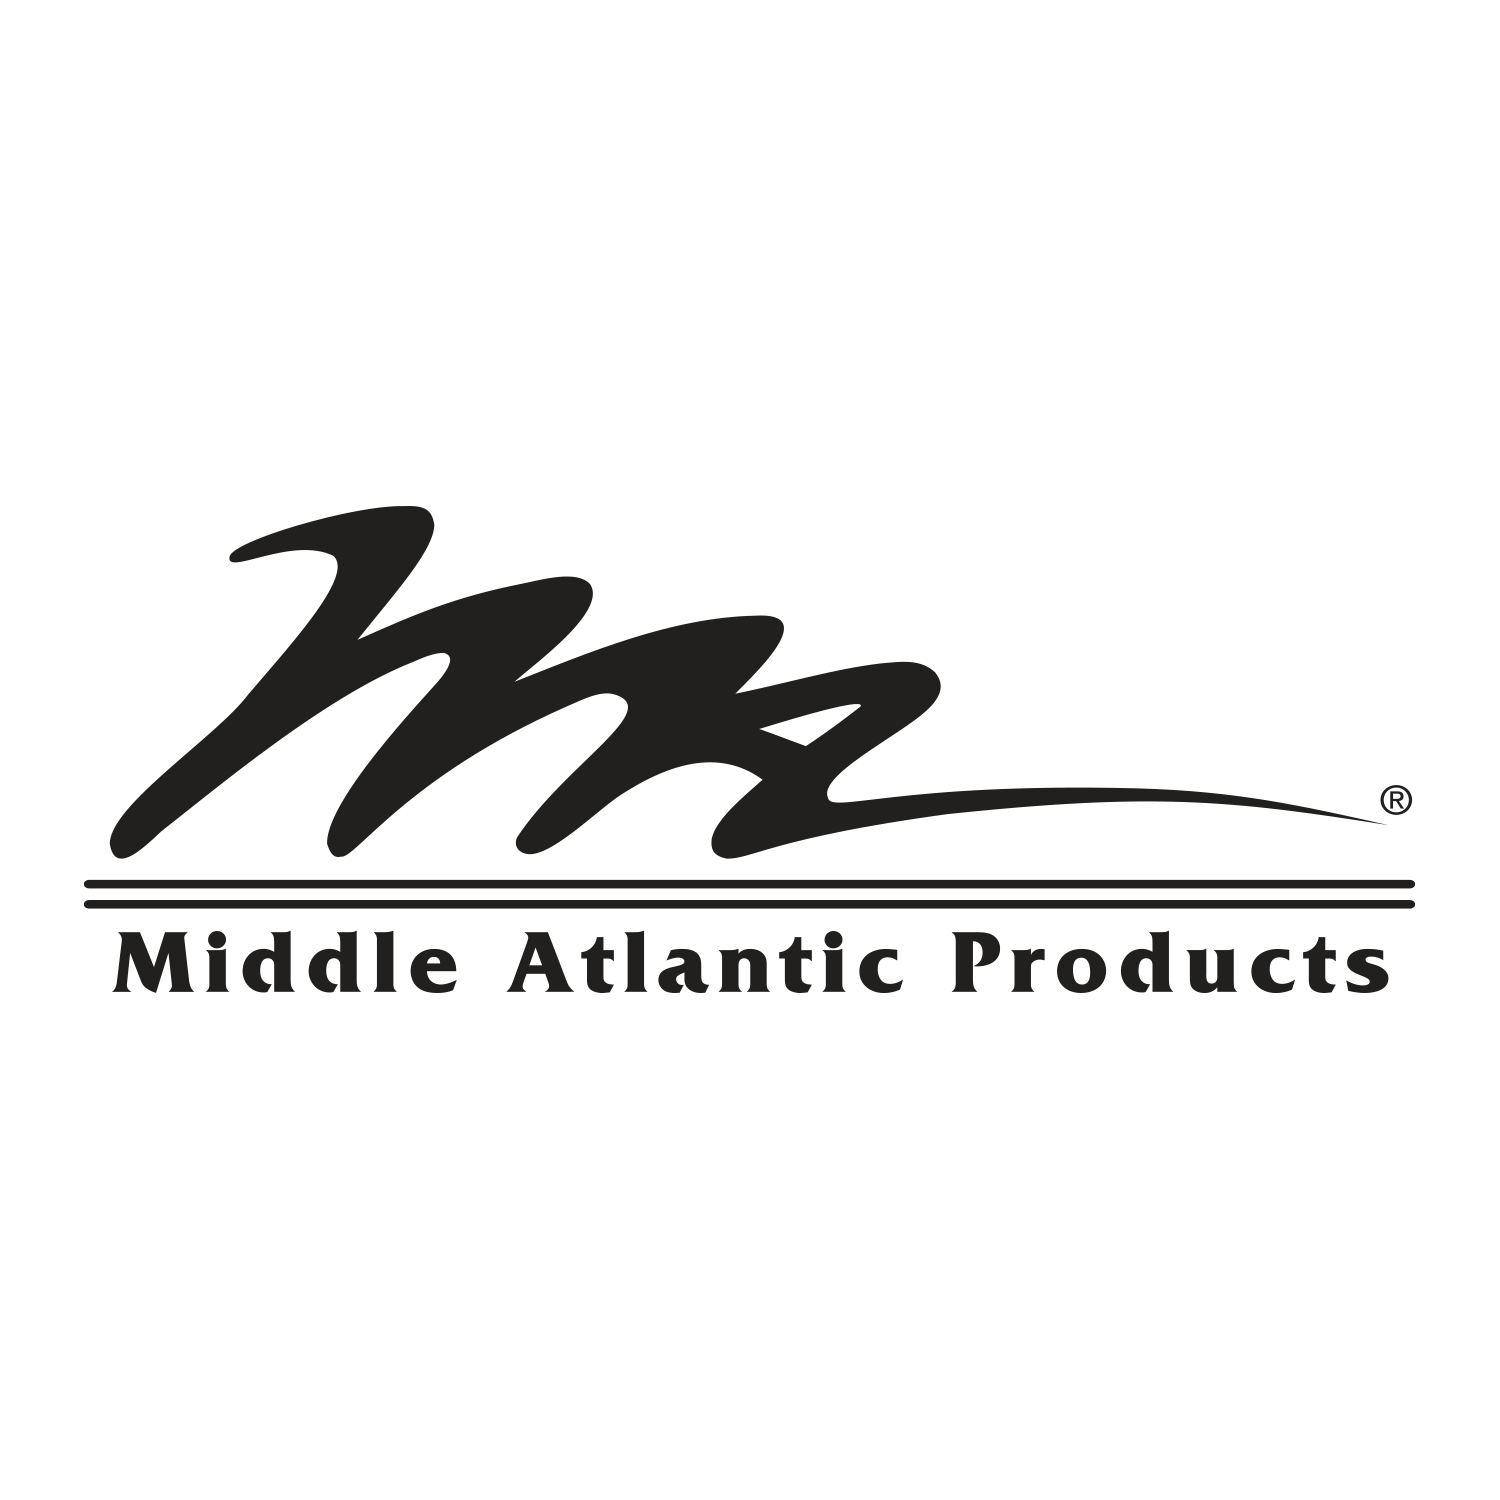 Logo Middle Atlantic